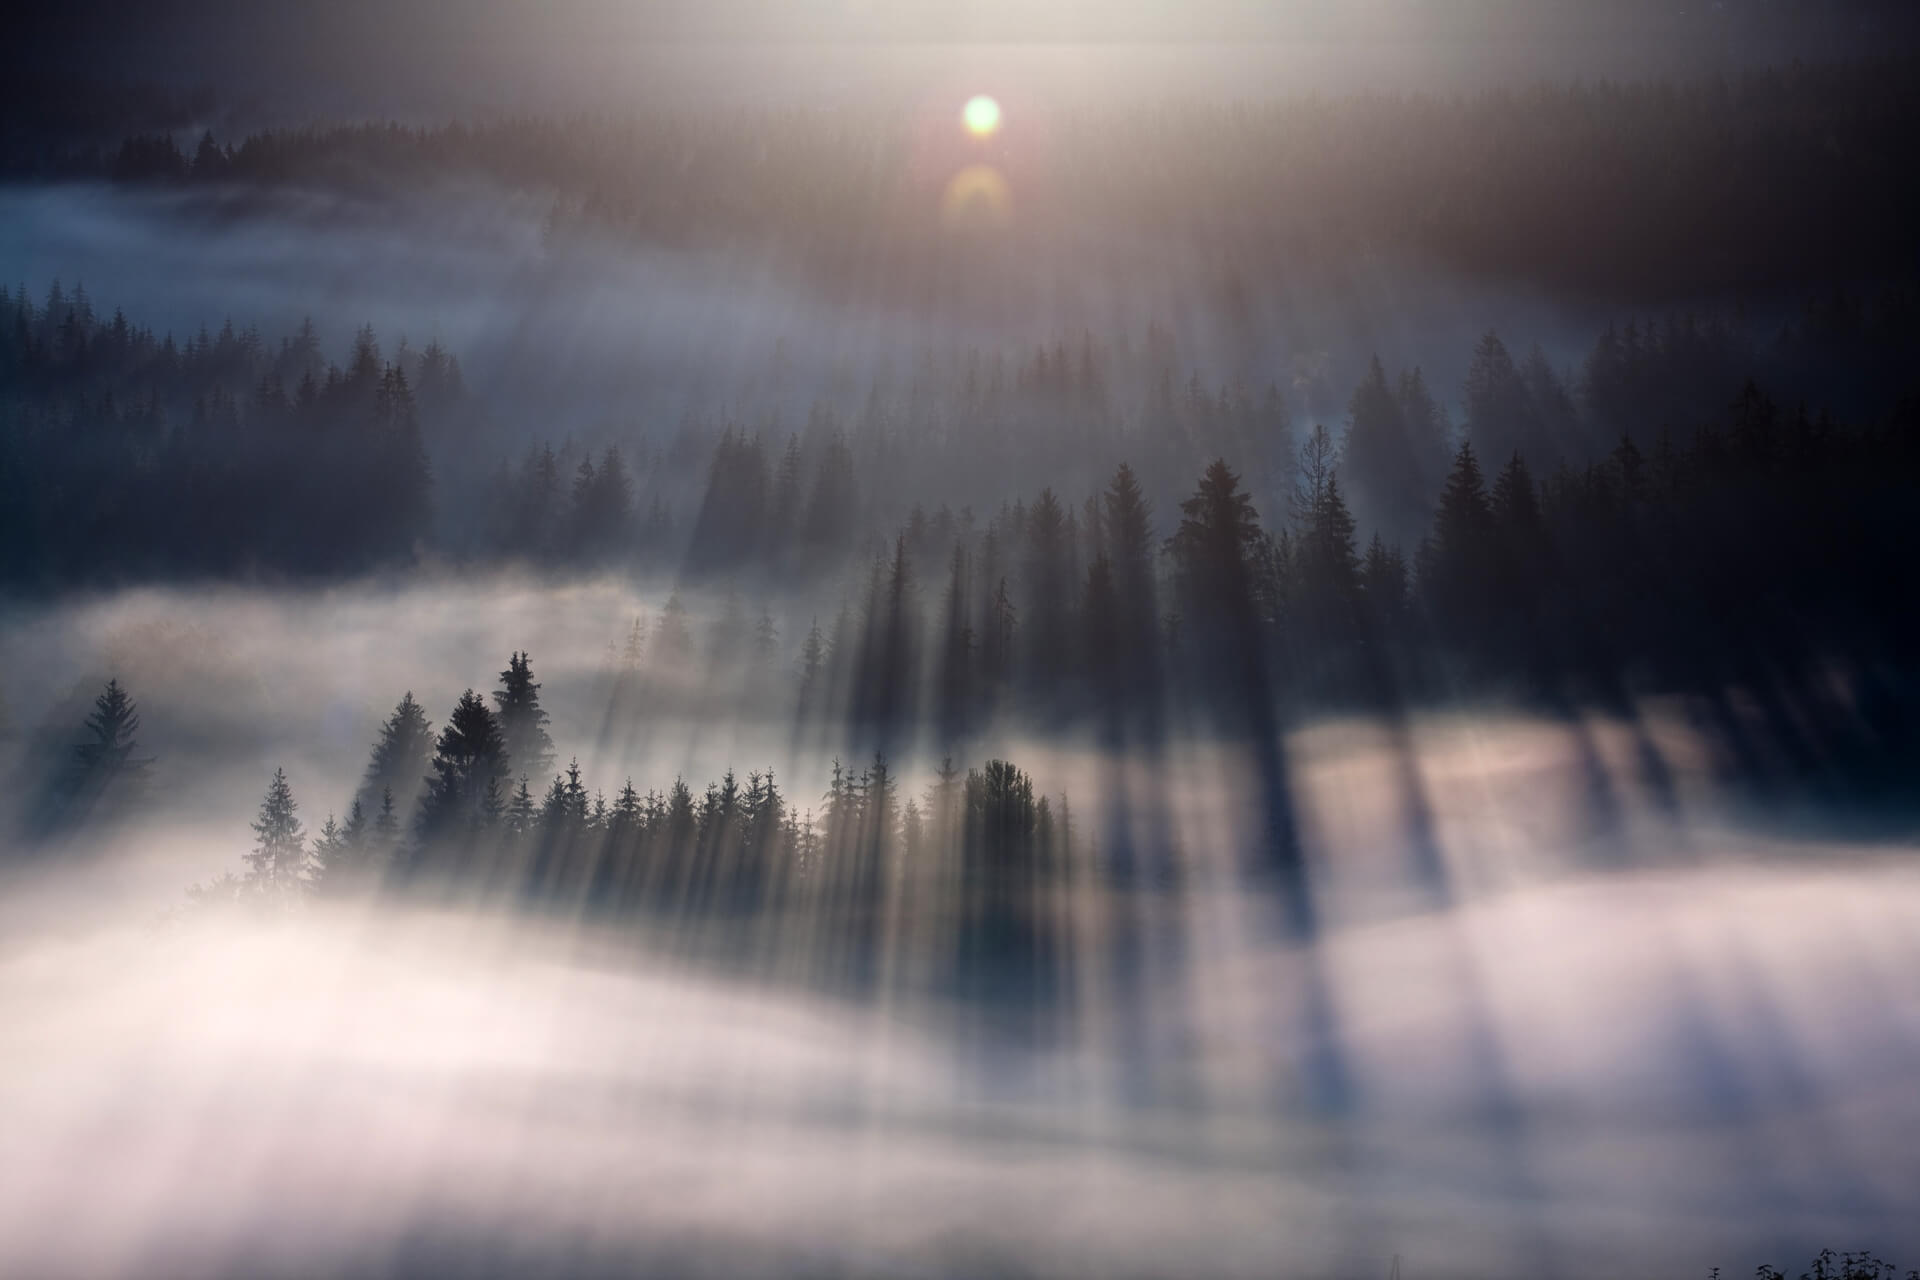 First rays by Marcin Sobas - Downloaded from 500px